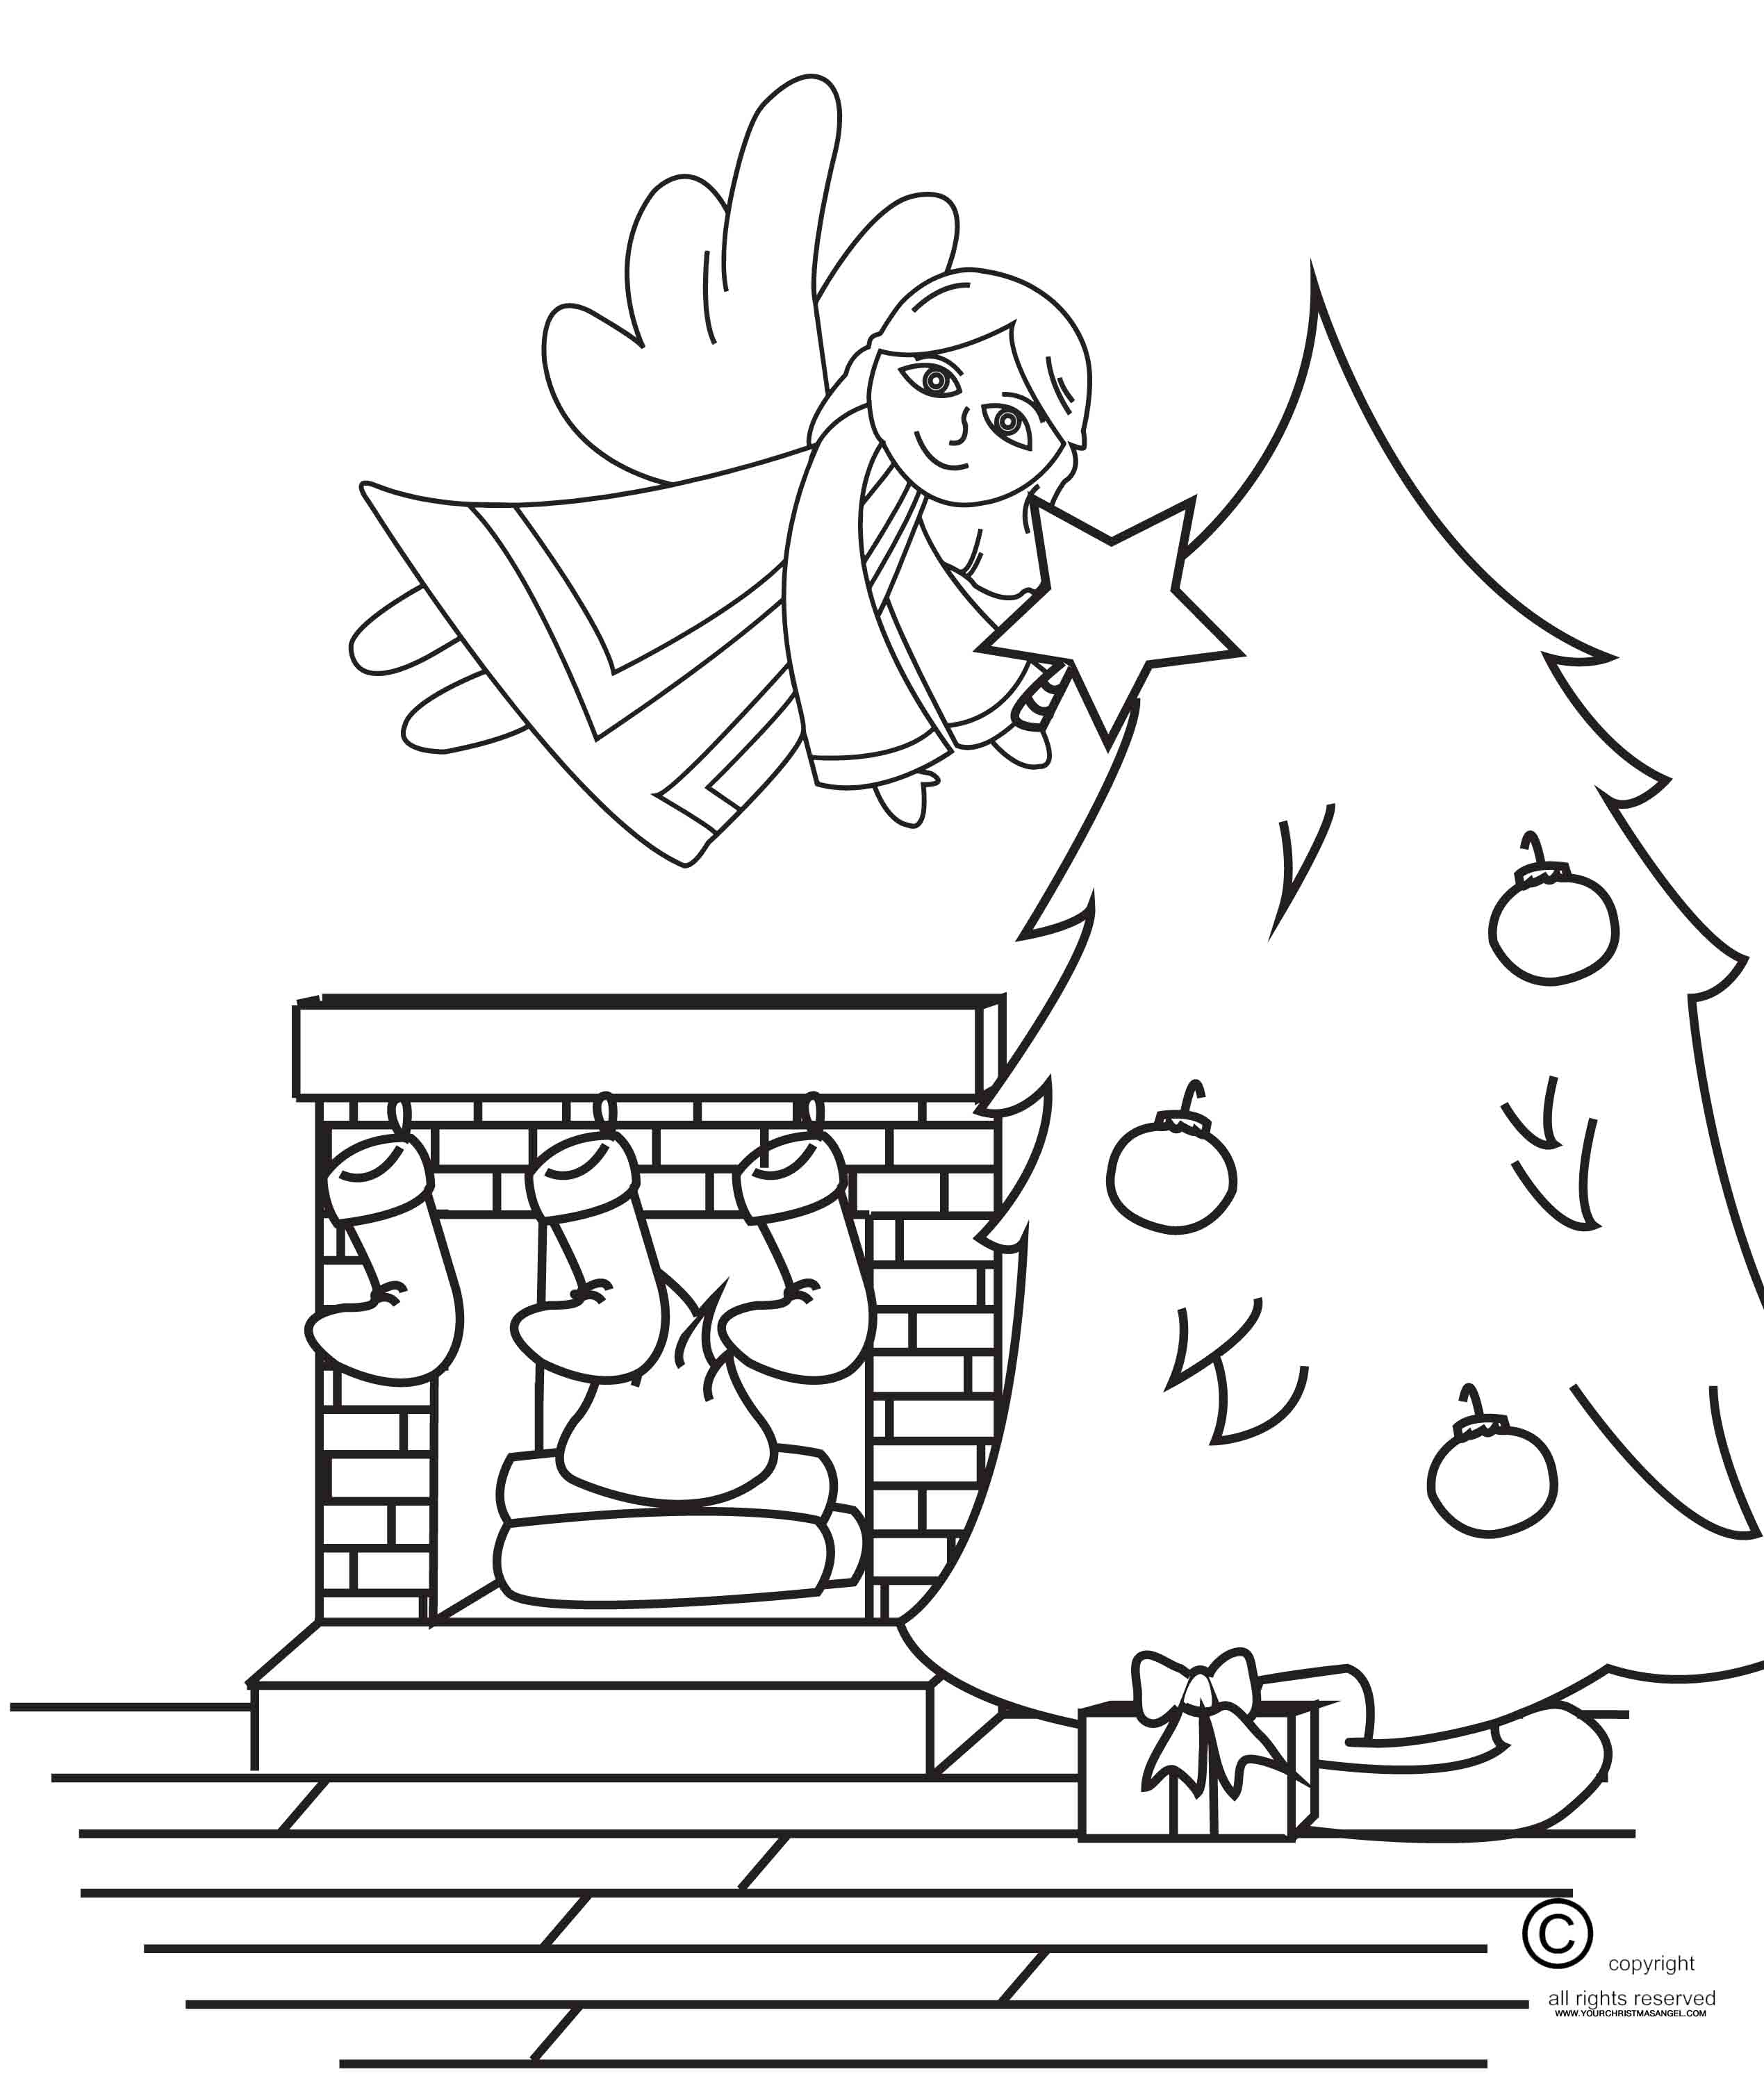 The Christmas Angel Coloring Page